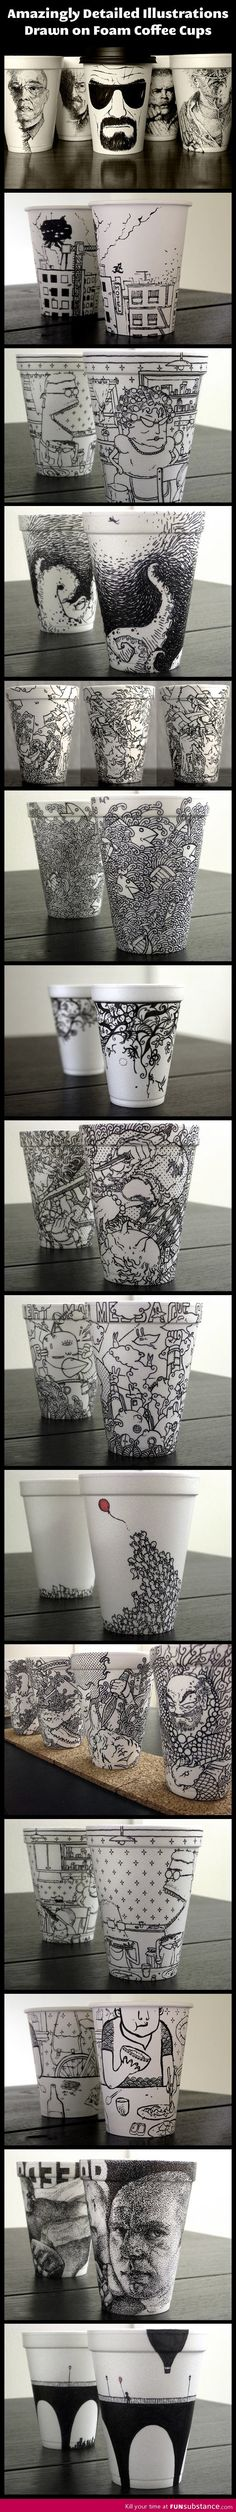 Awesome coffee cup designs